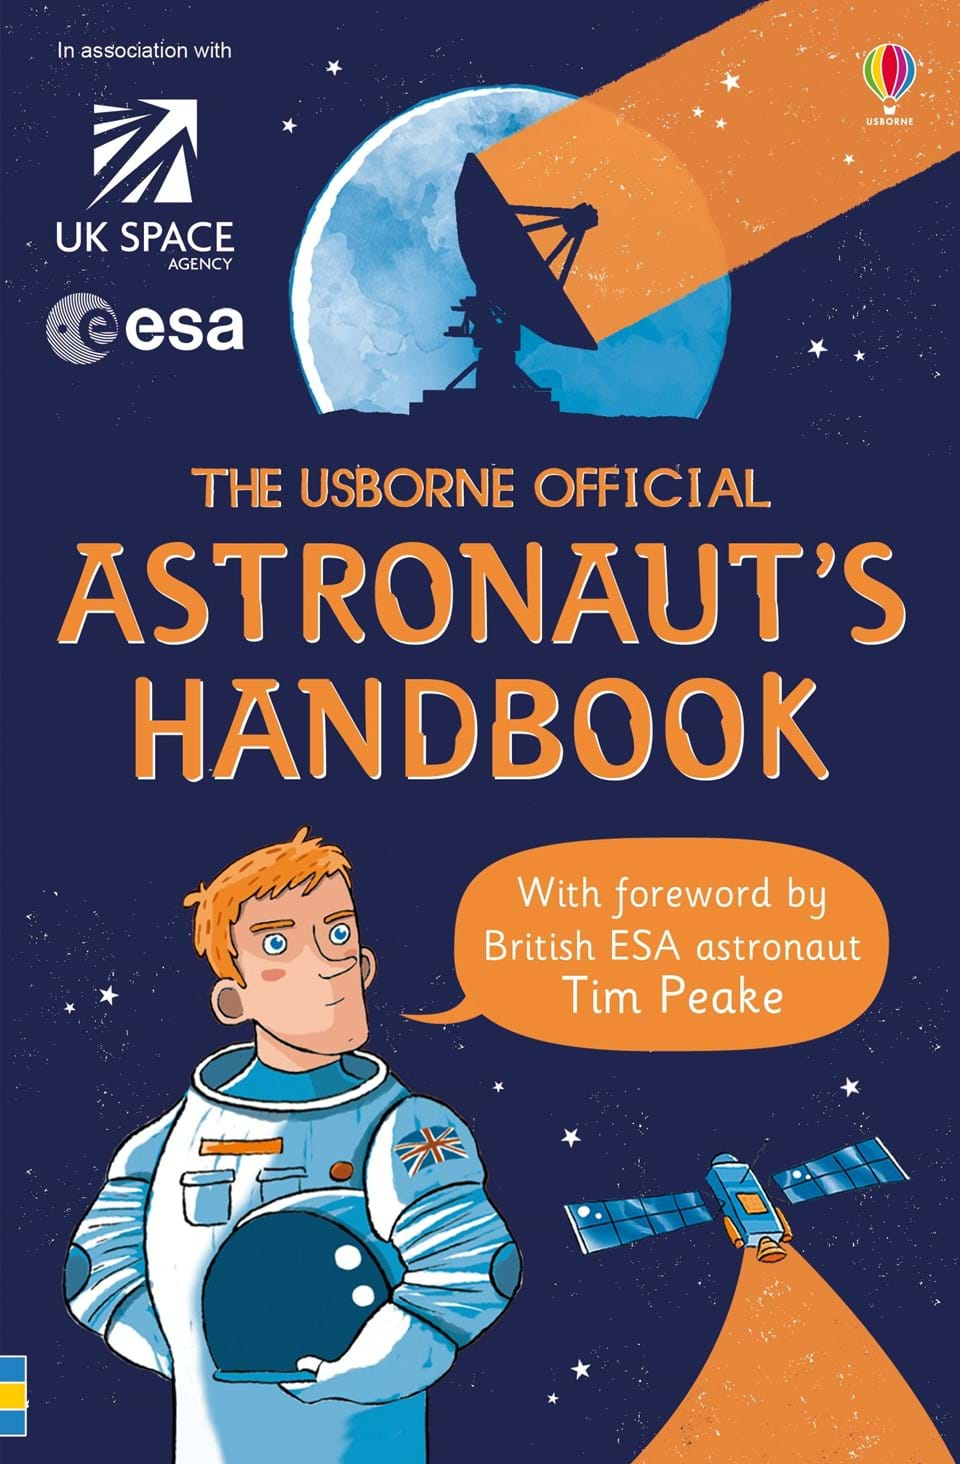 Official Questions Amp Answers Disadvantaged Business 3108881 Dimming Power Leds With Arduino Bajdicom Electrical Engineering The Usborne Astronauts Handbook At